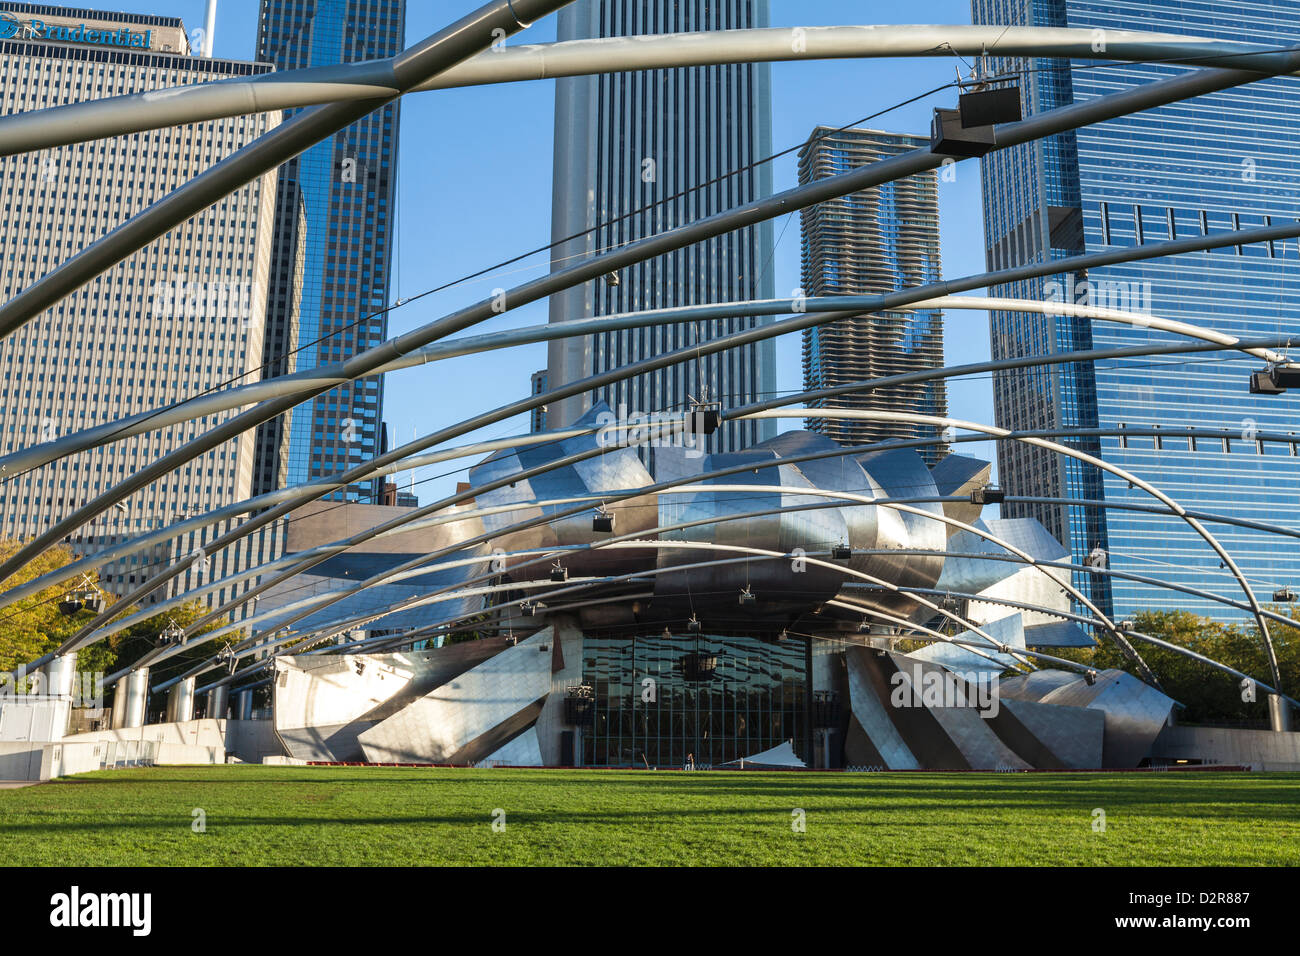 Jay Pritzker Pavilion designed by Frank Gehry, Millennium Park, Chicago, Illinois, United States of America, North - Stock Image